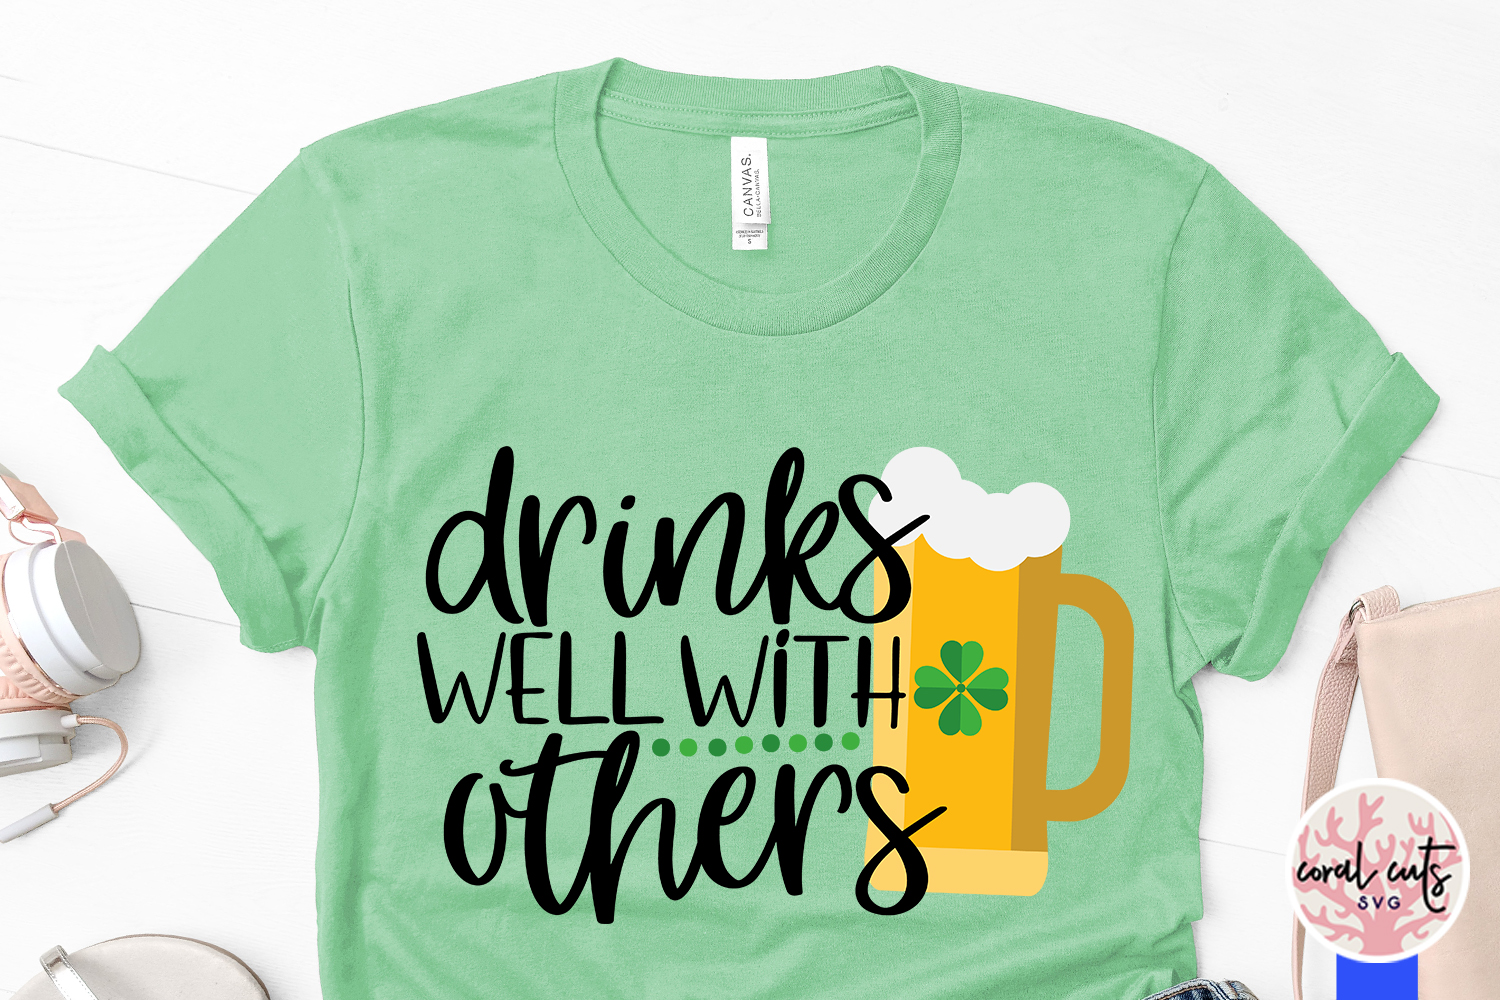 Drink well with others - St. Patrick's Day SVG EPS DXF PNG example image 3